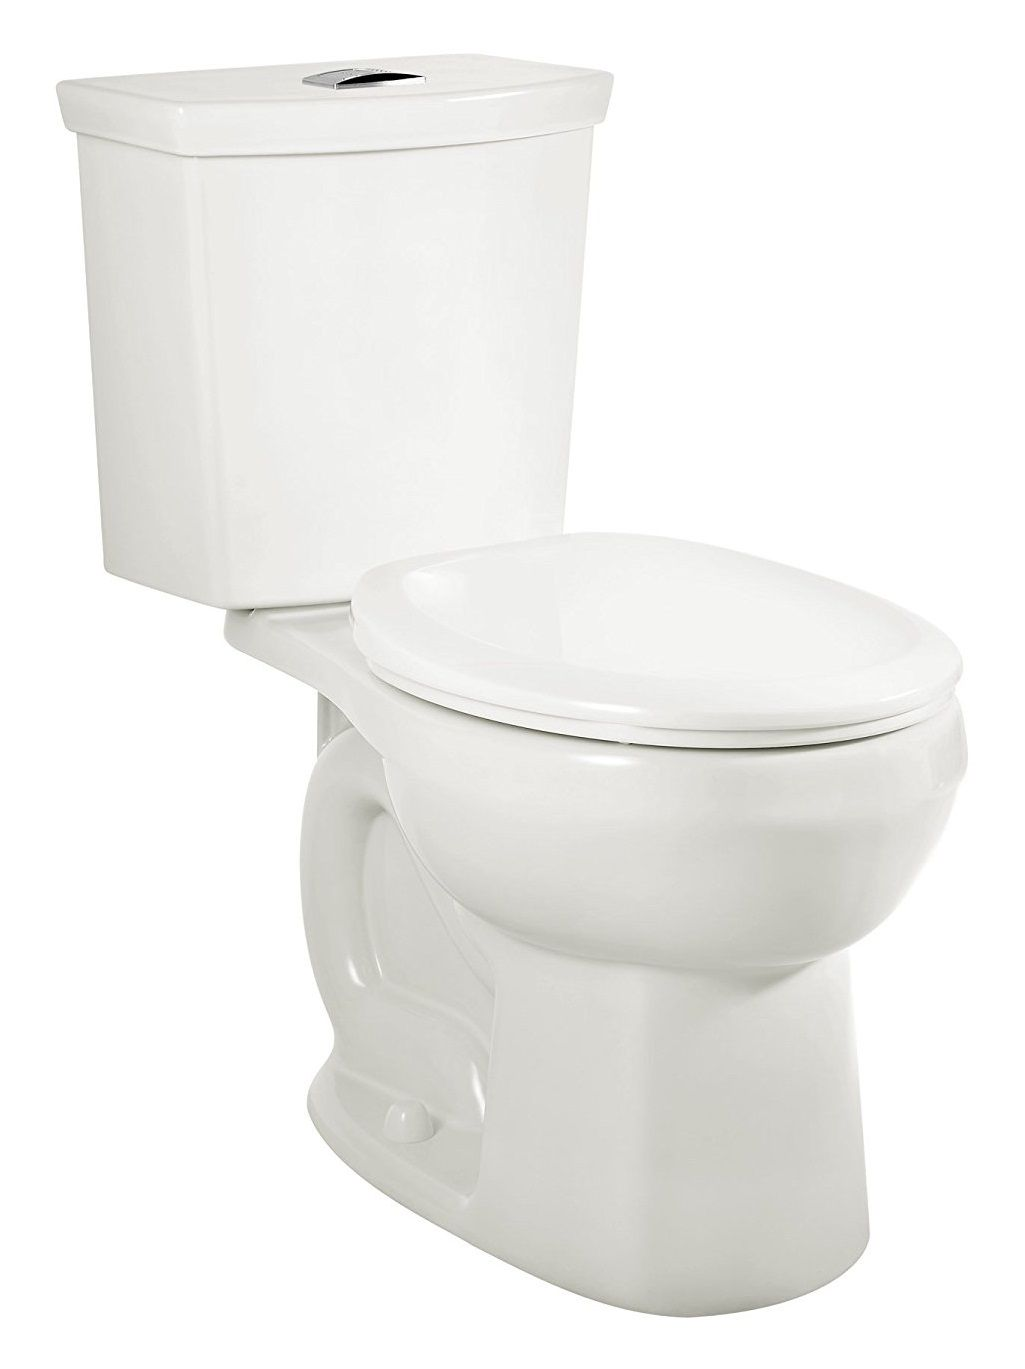 American Standard 2889518.020 H2Option Siphonic Dual Flush Normal Height Round Front Toilet